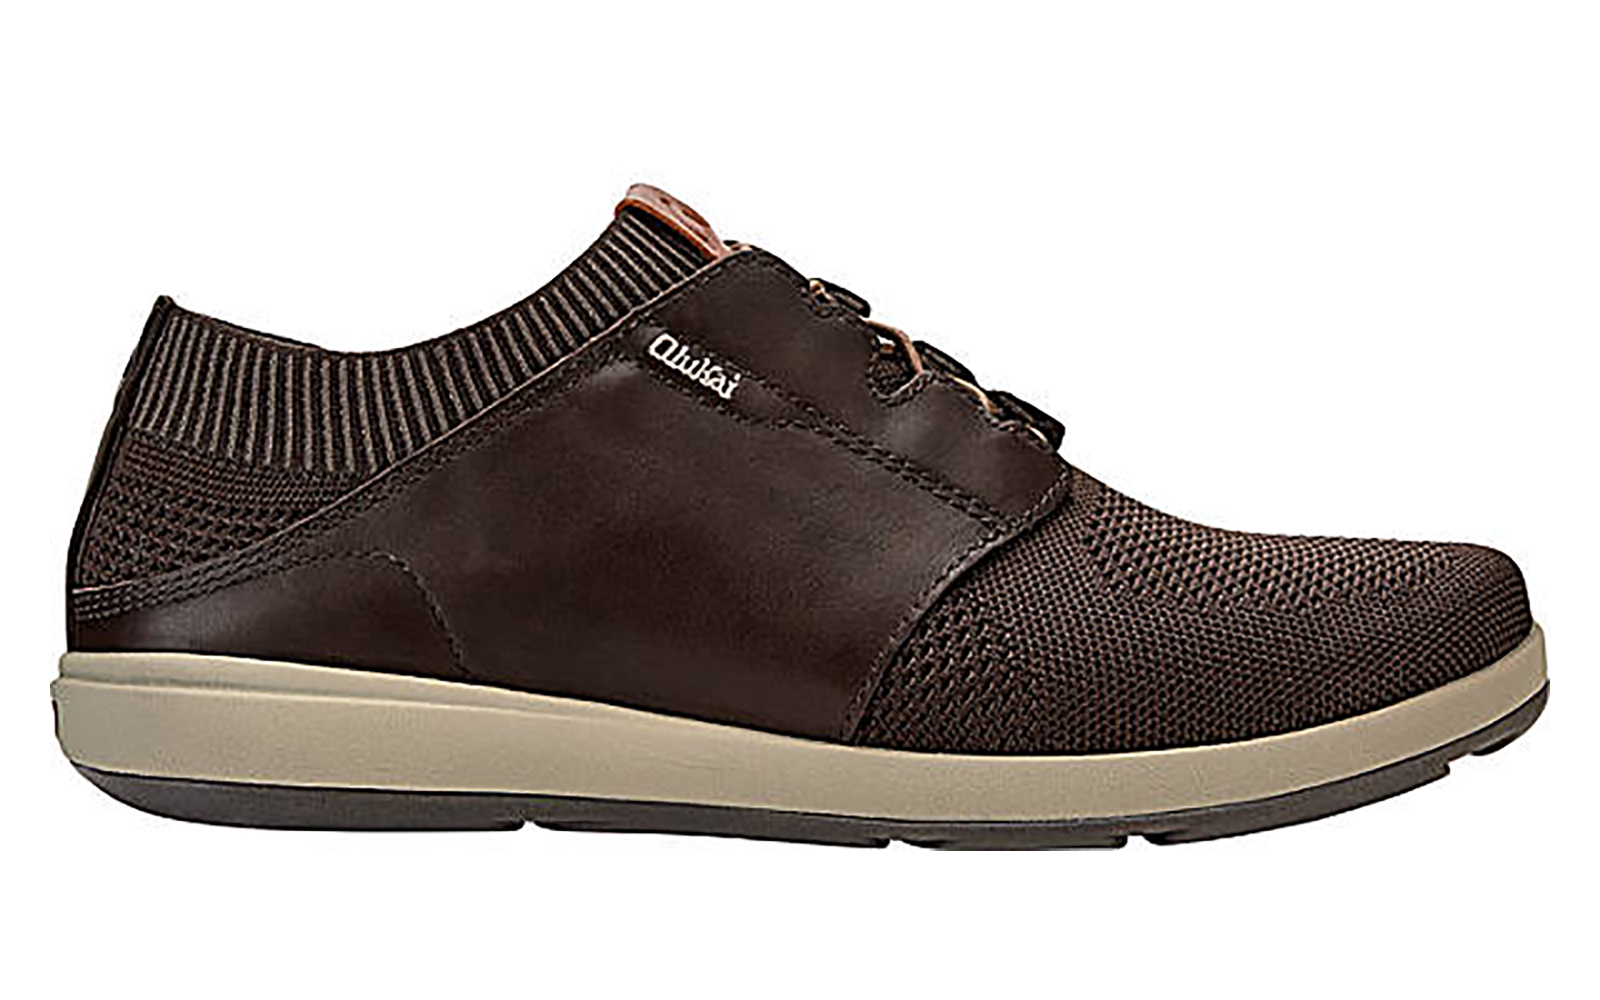 OluKai Mens Makia Ulana Slip-On